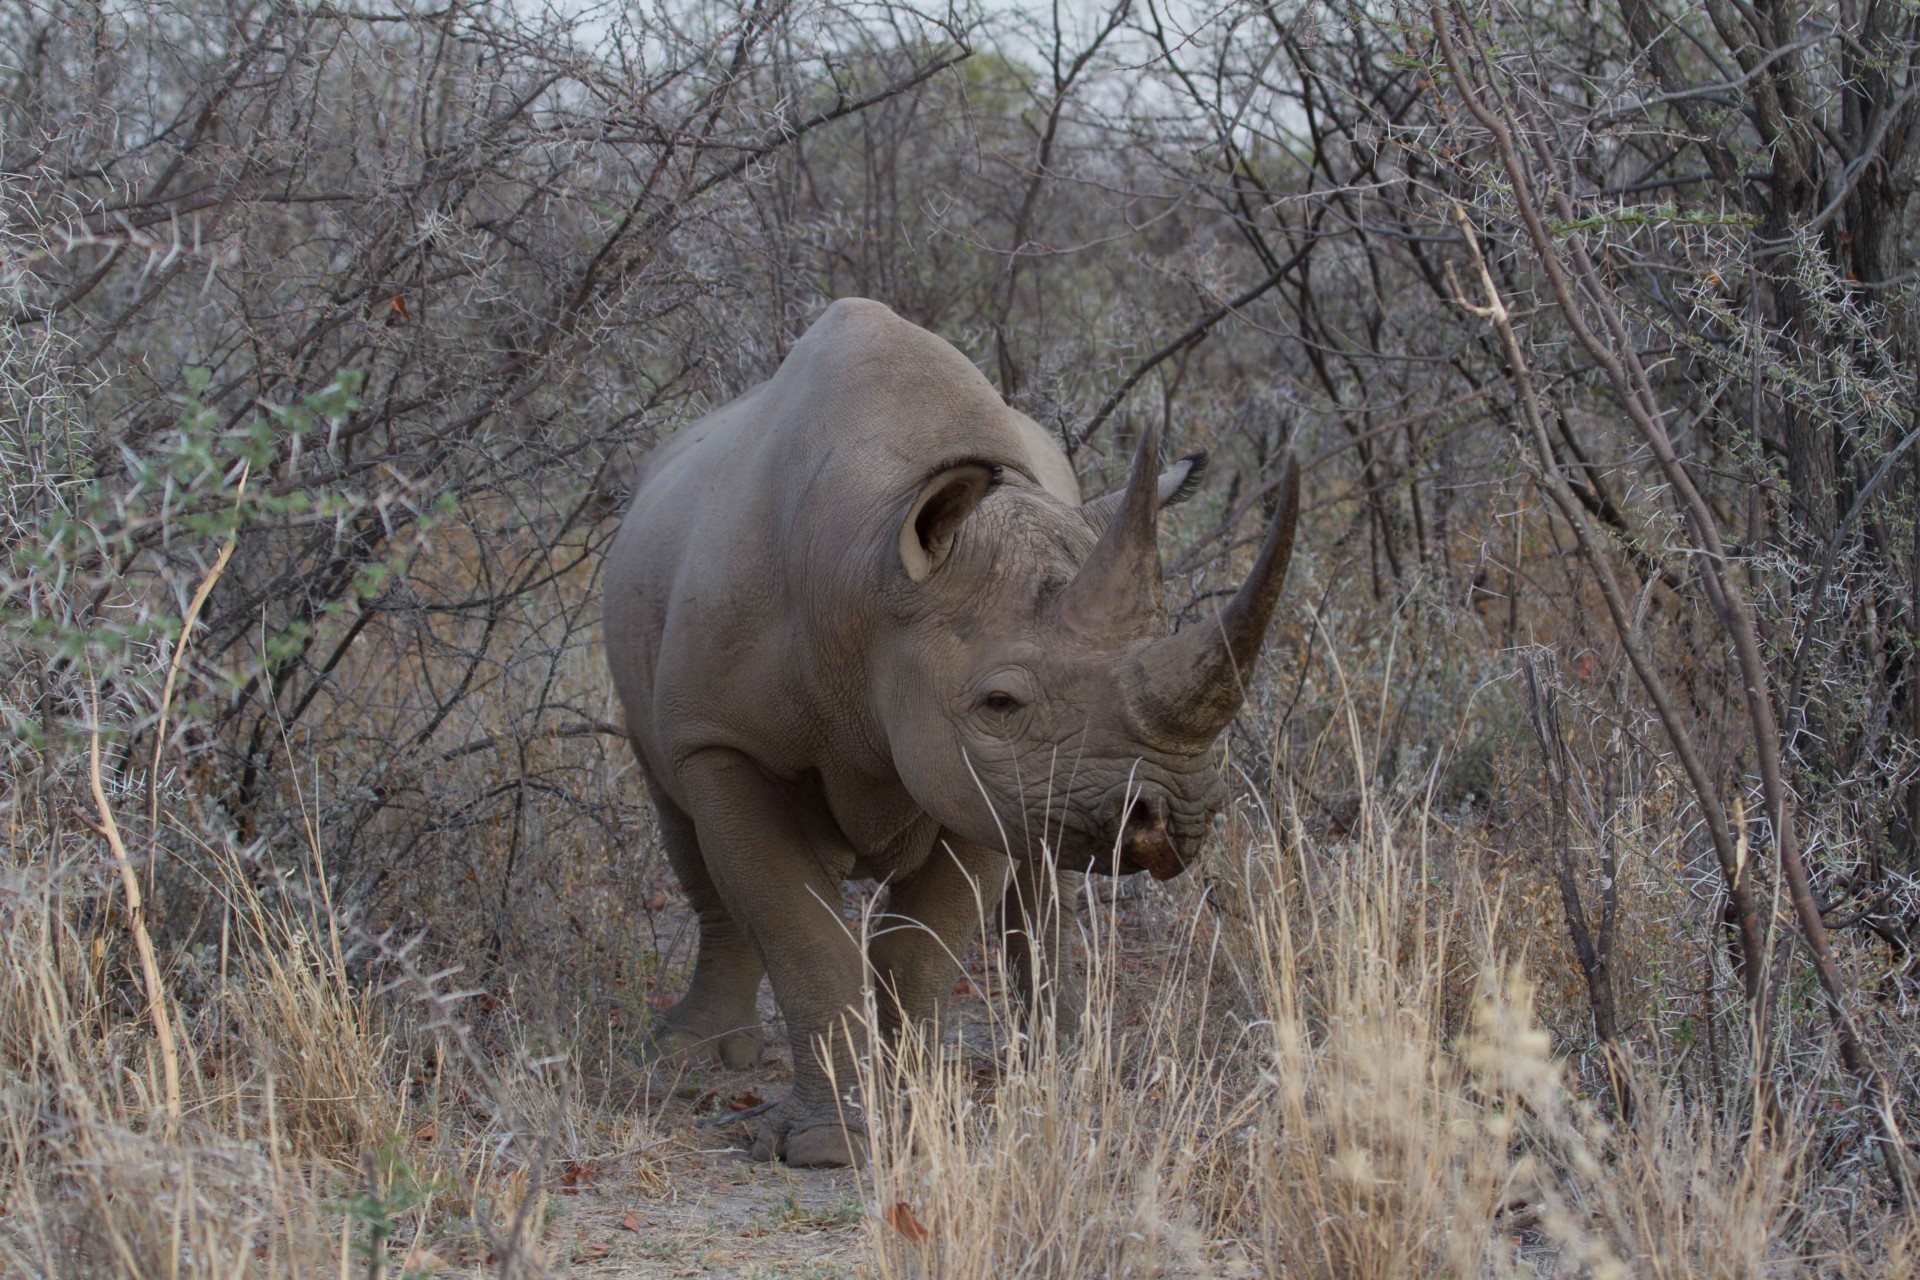 Black Rhino, seen just off the road, Etosha National Park